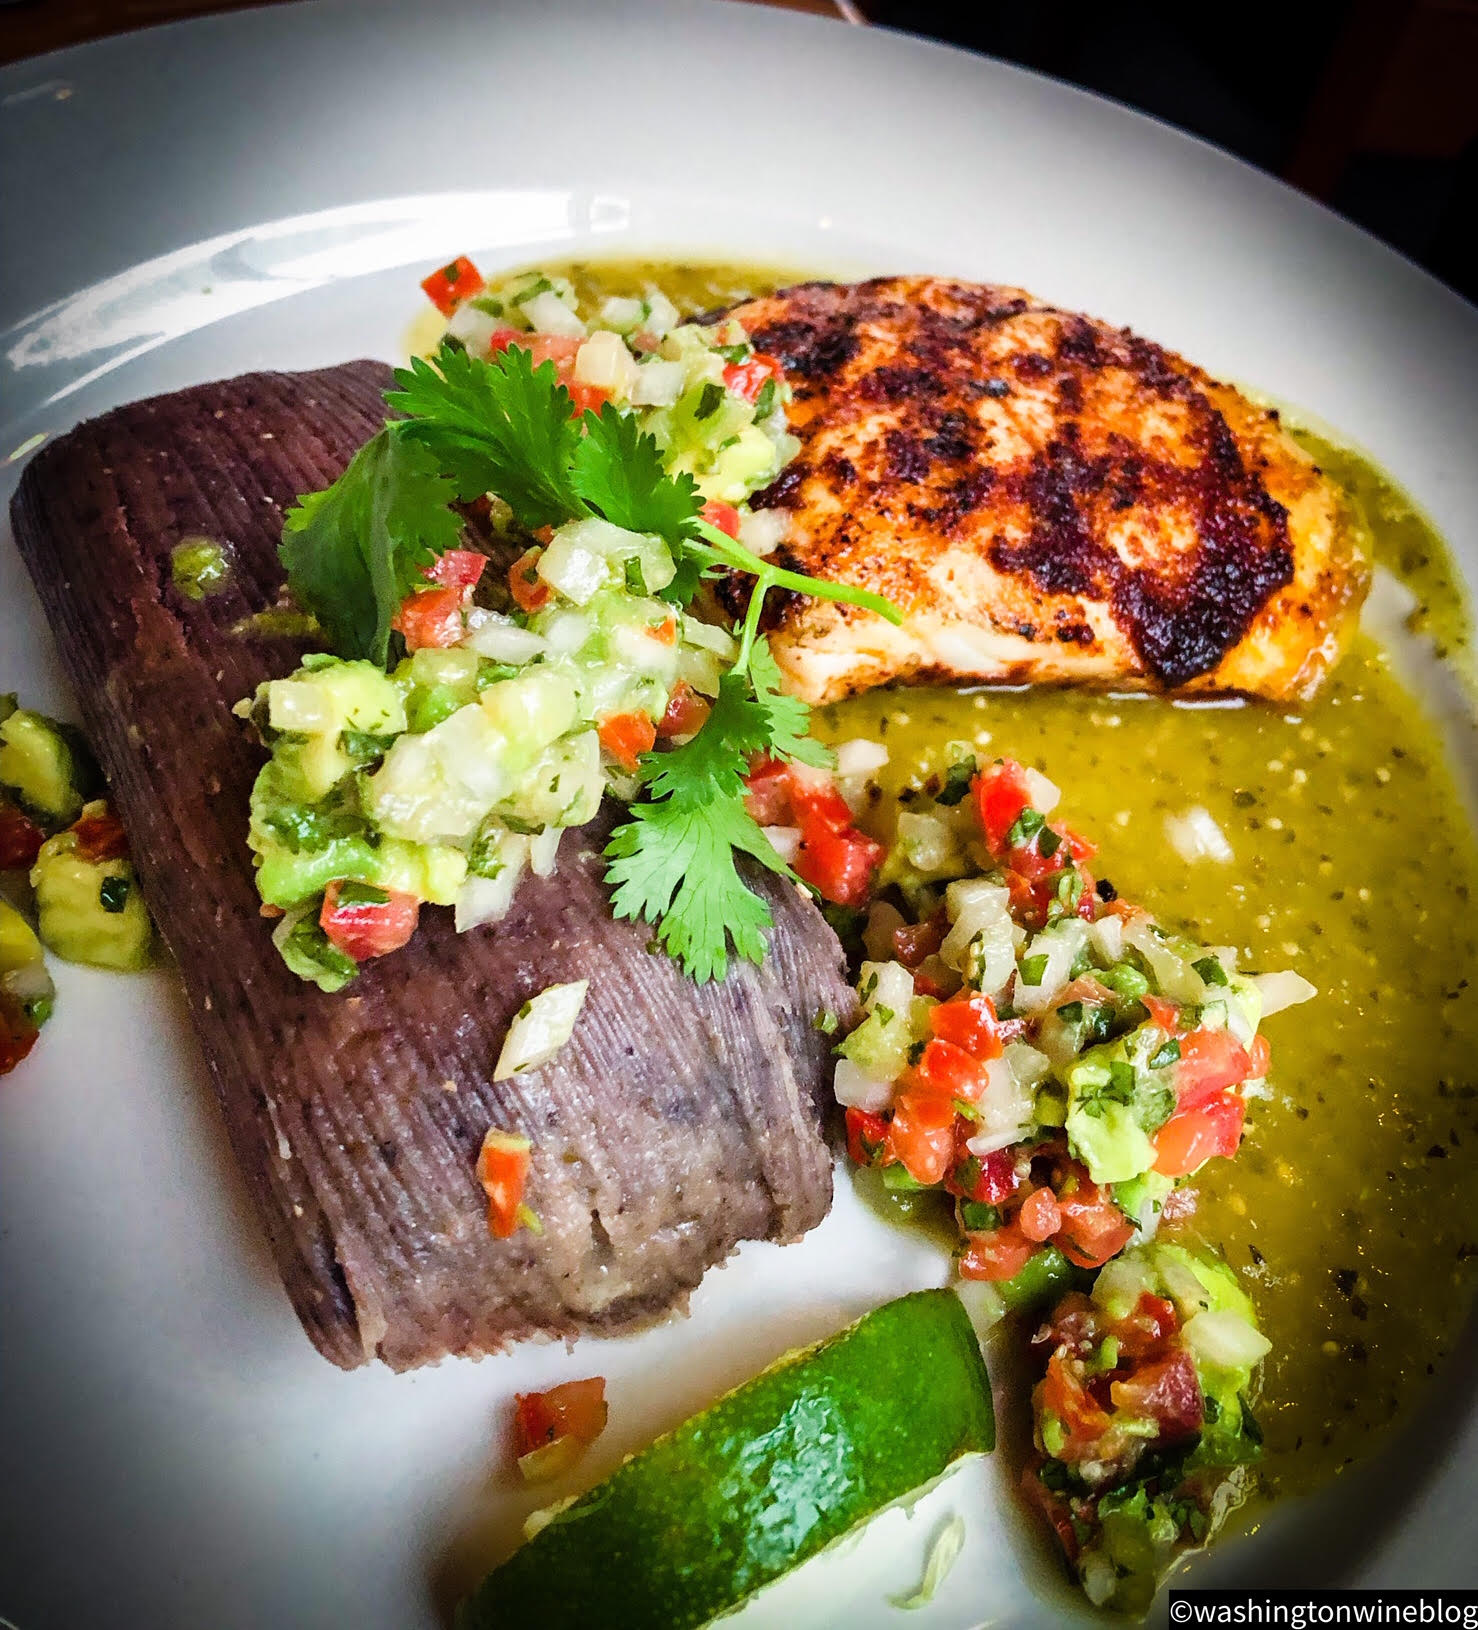 Delightfully playful Mexican style preparation of Halibut.